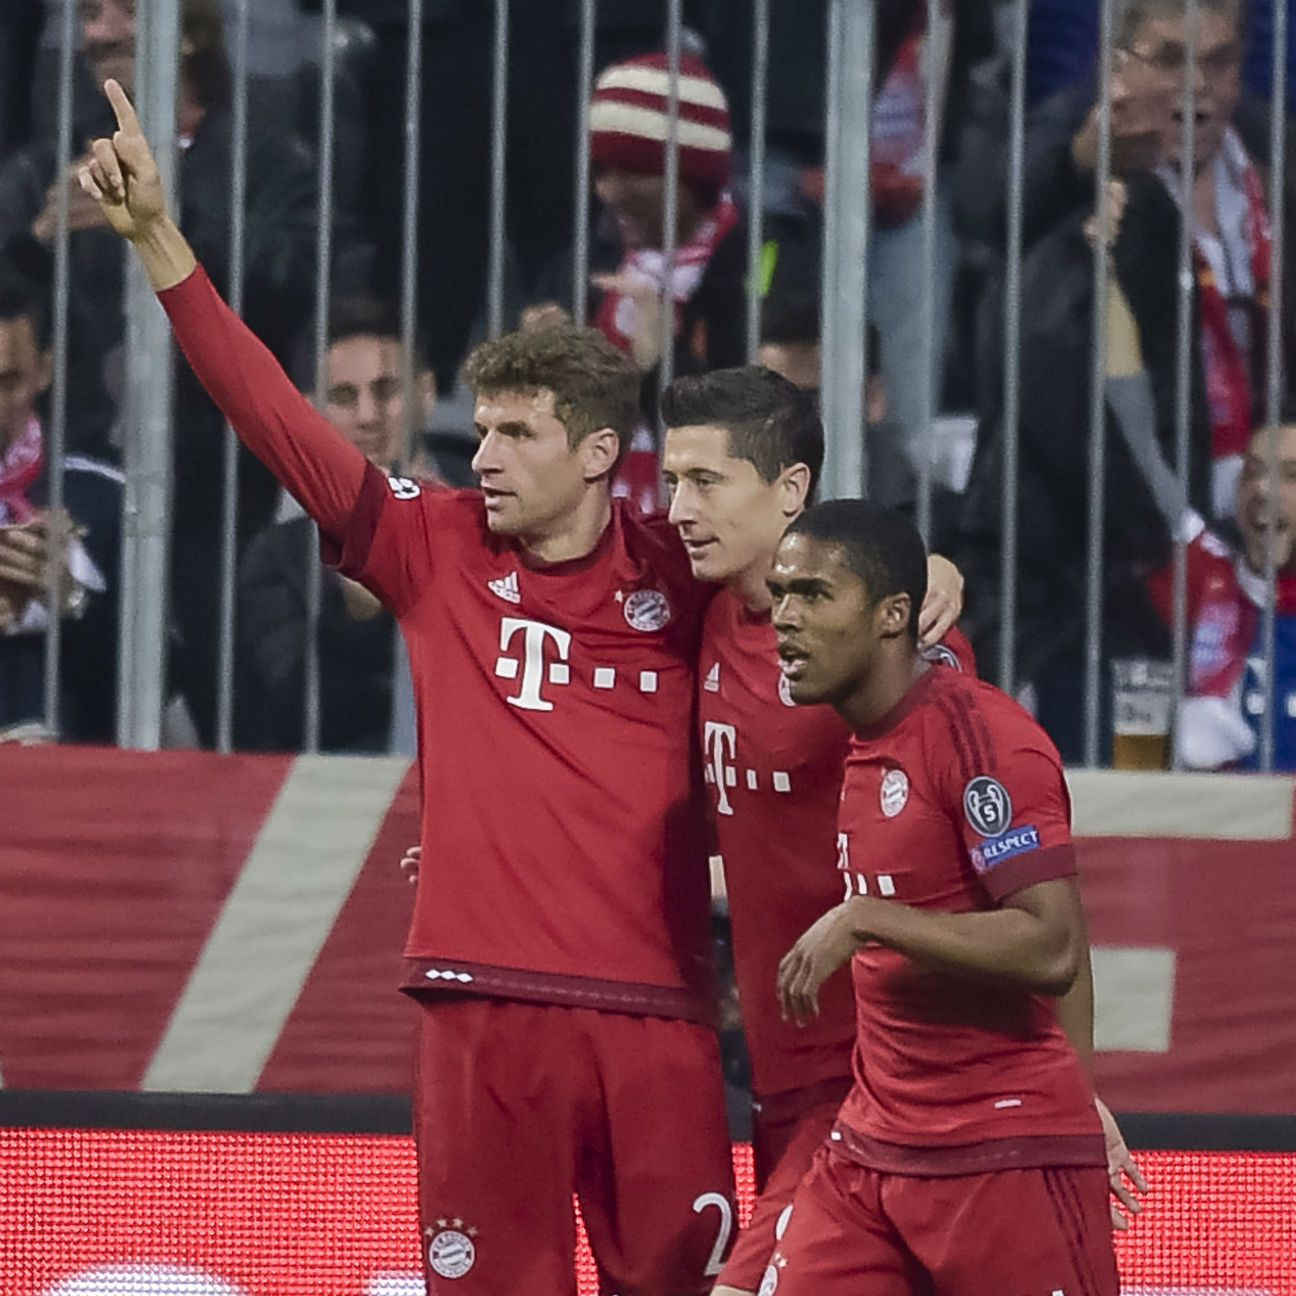 There was no stopping Bayern Munich's attack in Wednesday's resounding victory over Arsenal.